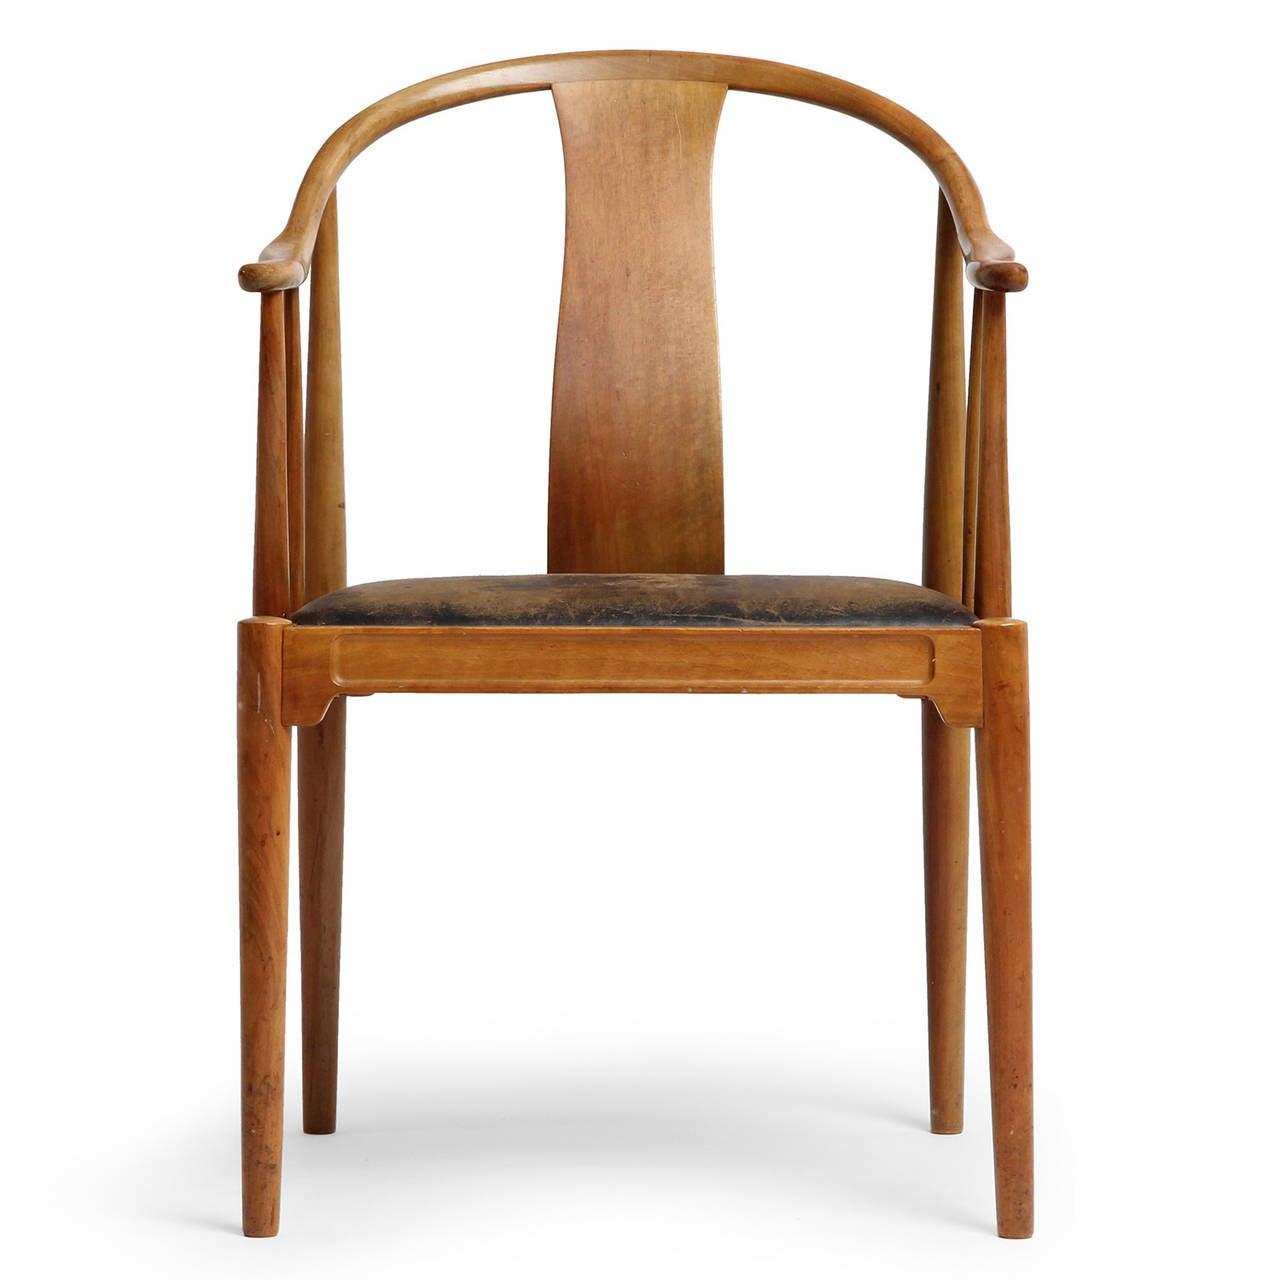 Chinese chairs by hans j wegner for sale at 1stdibs for Asian chairs for sale